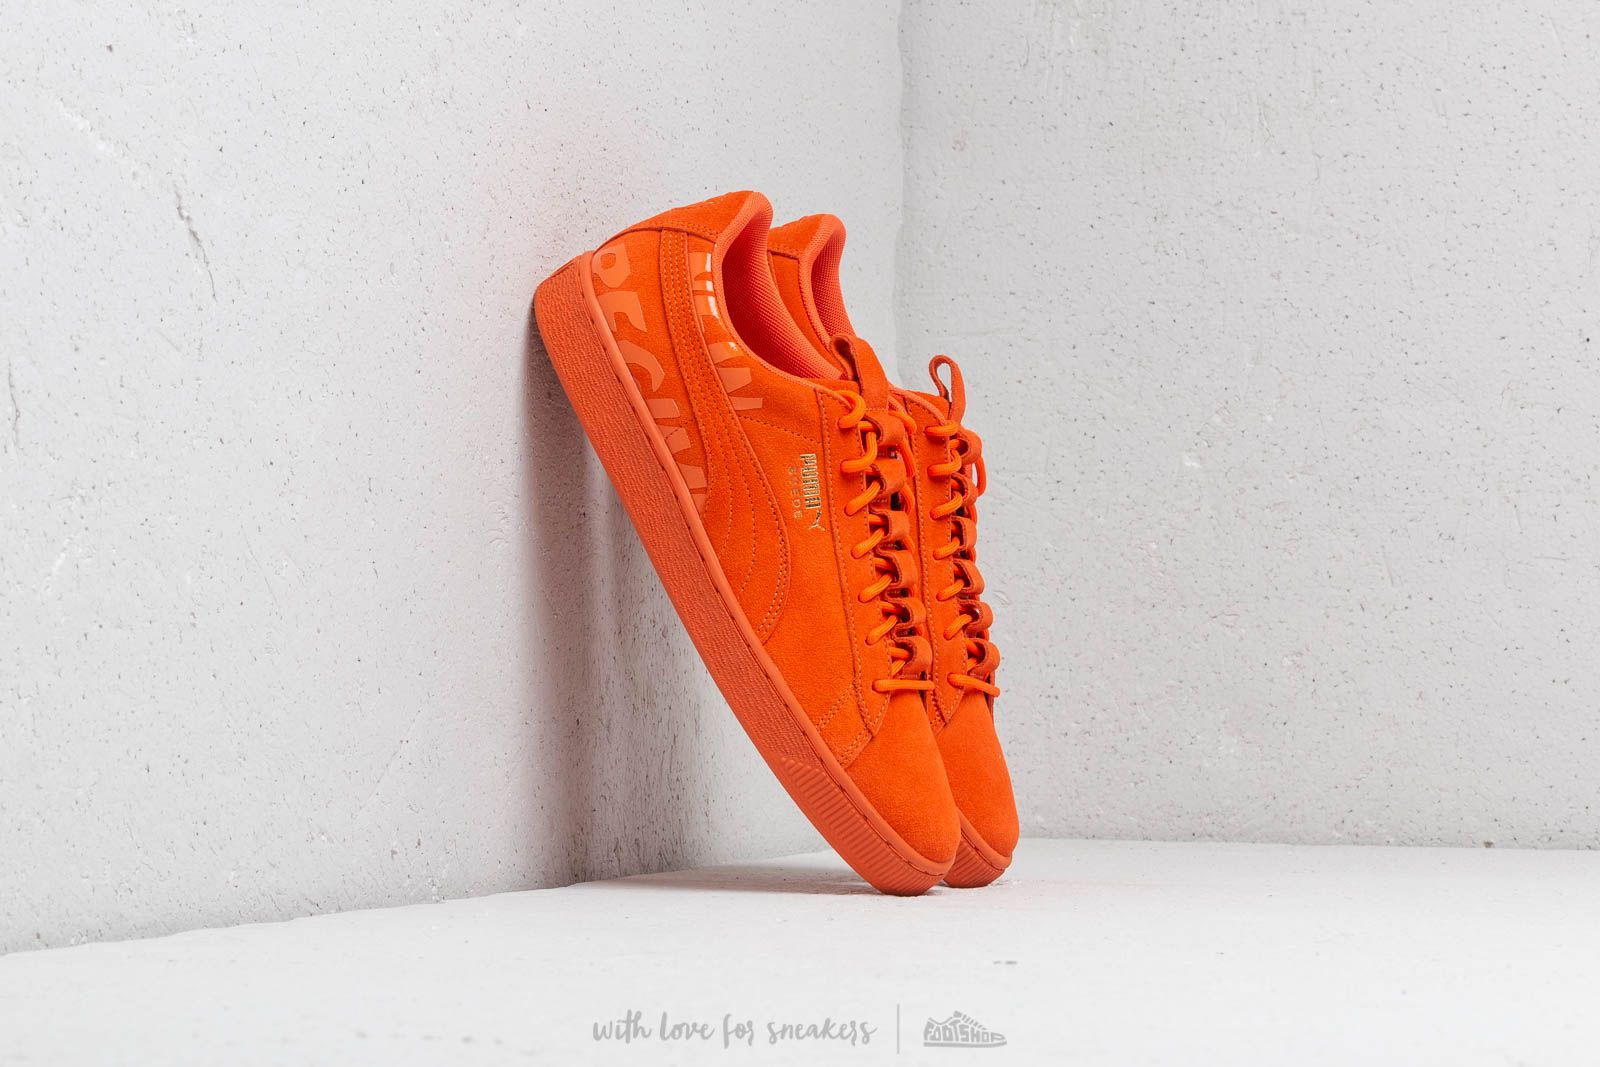 Puma x Atelier New Regime Suede Scarlet Ibis  Scarlet Ibis at a great price  110 0c28a6340